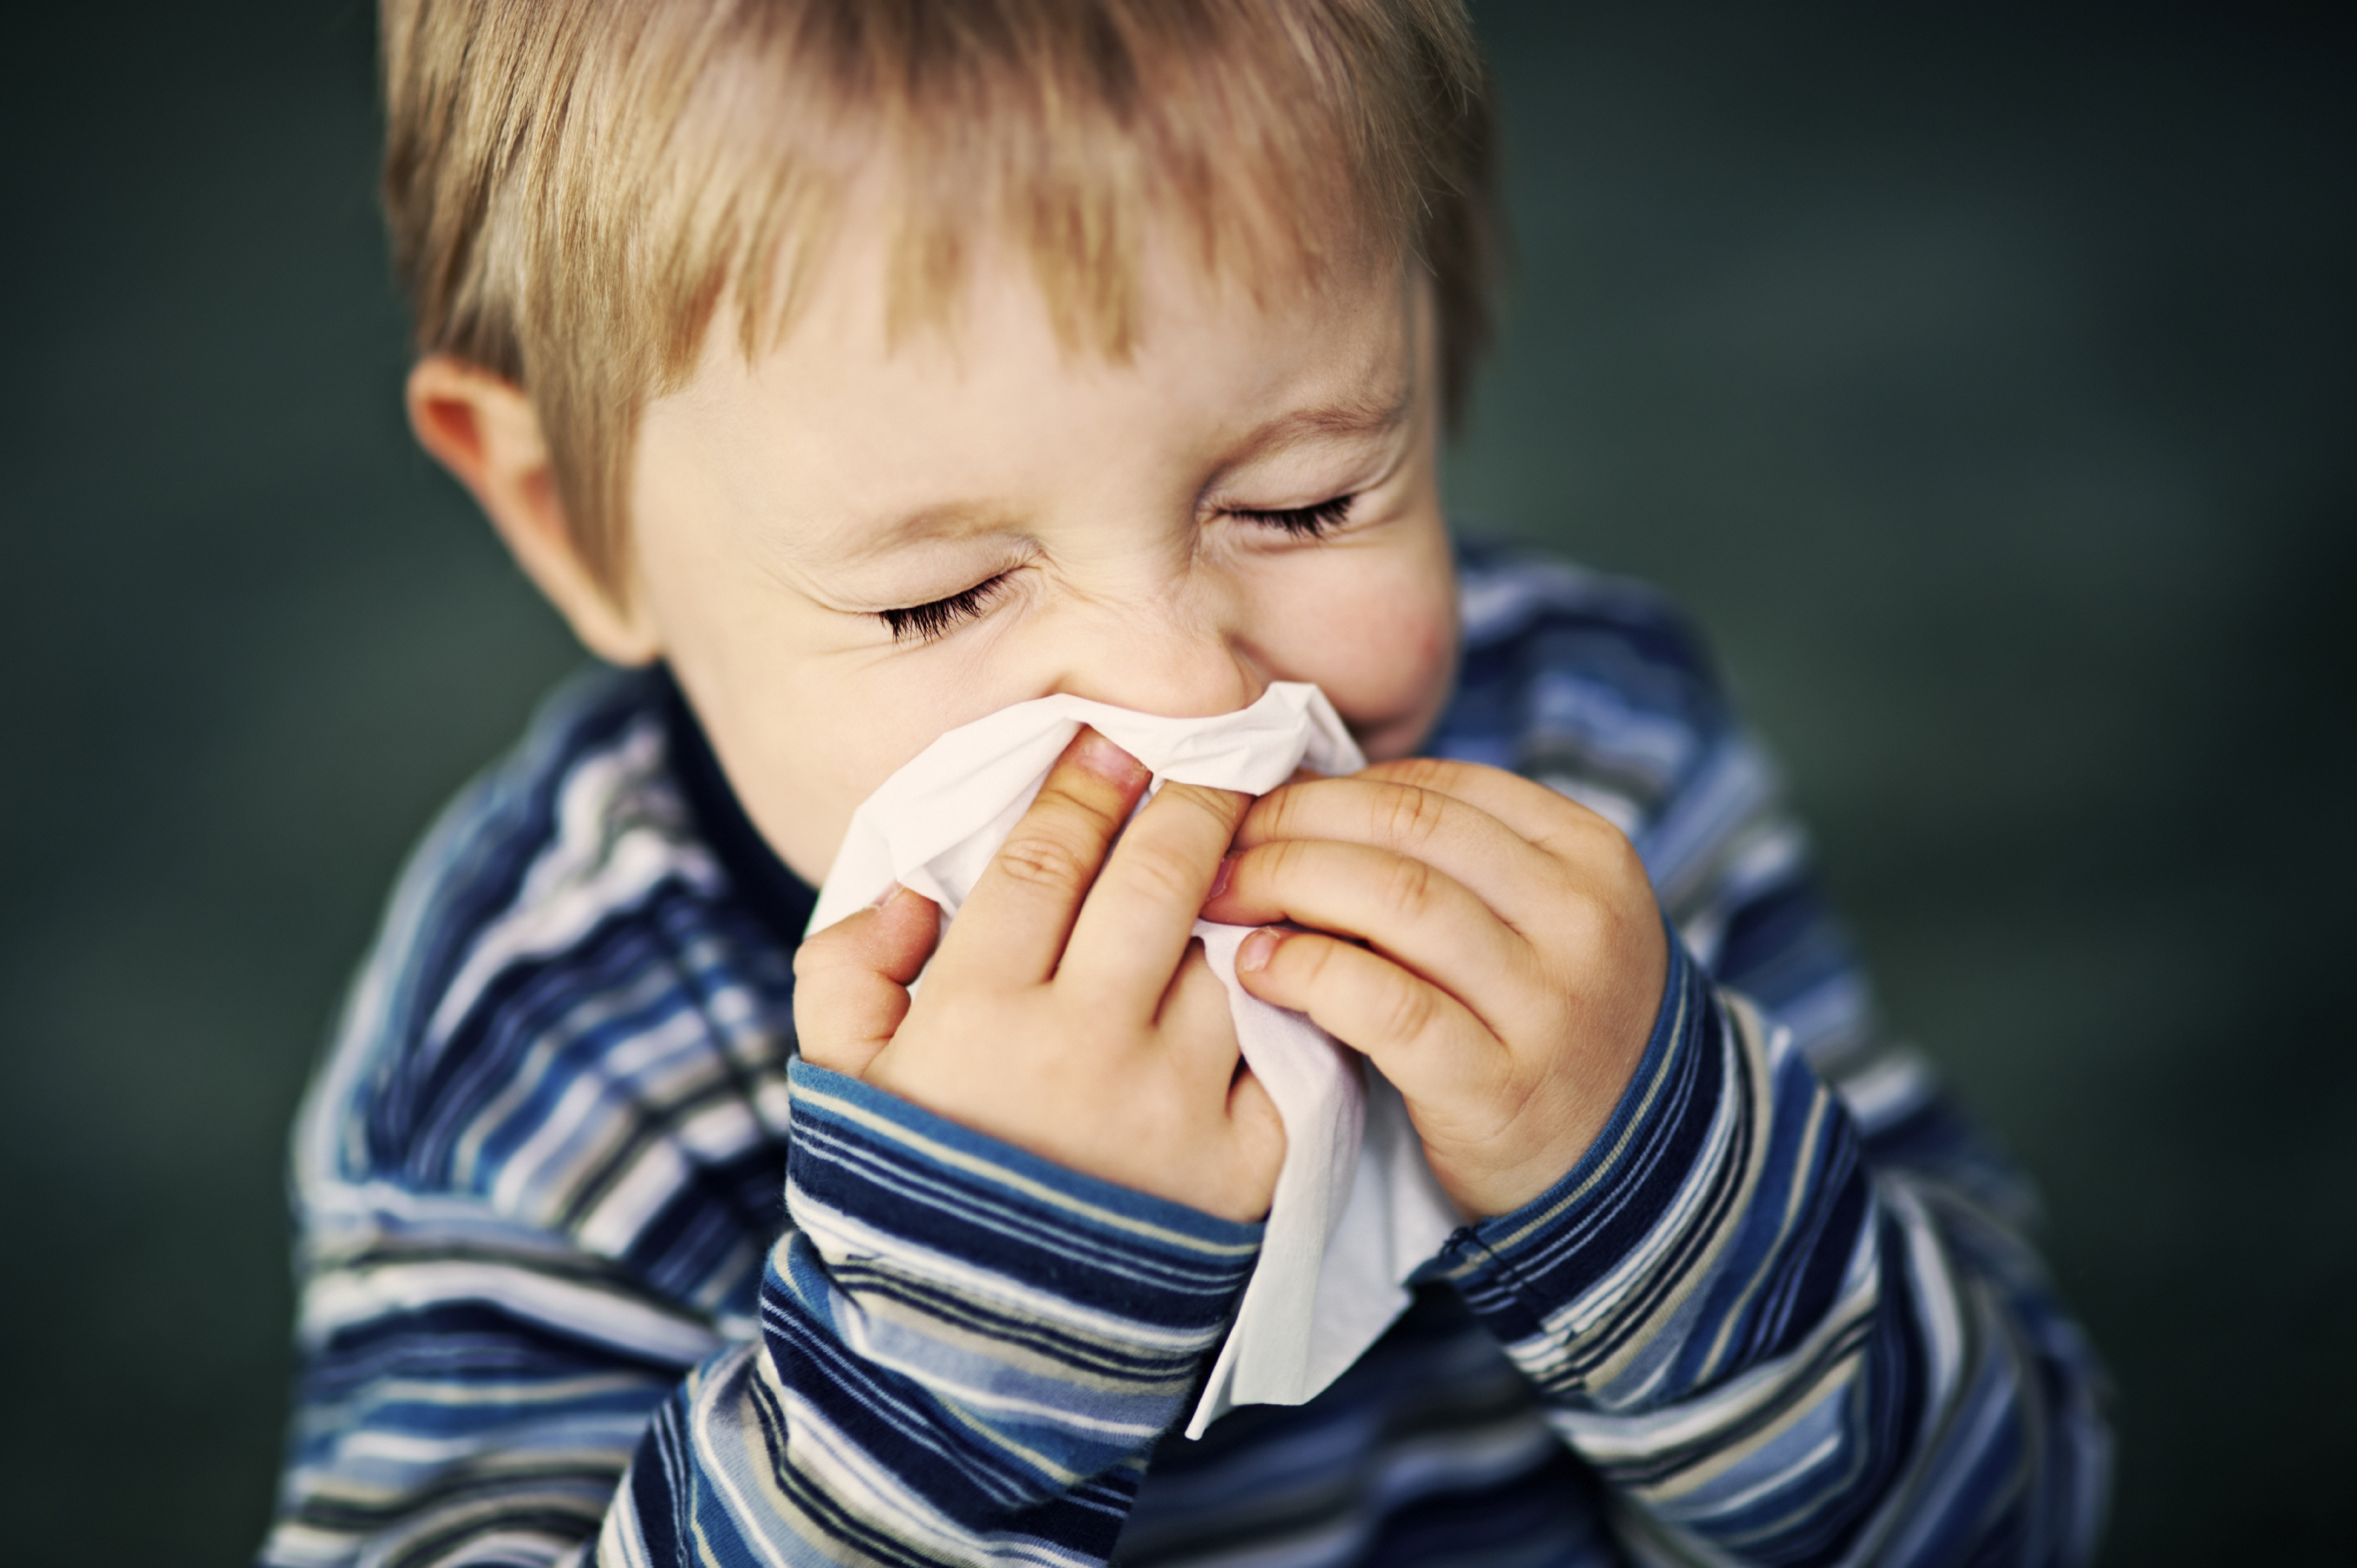 Does my child have a cold, or is it flu?